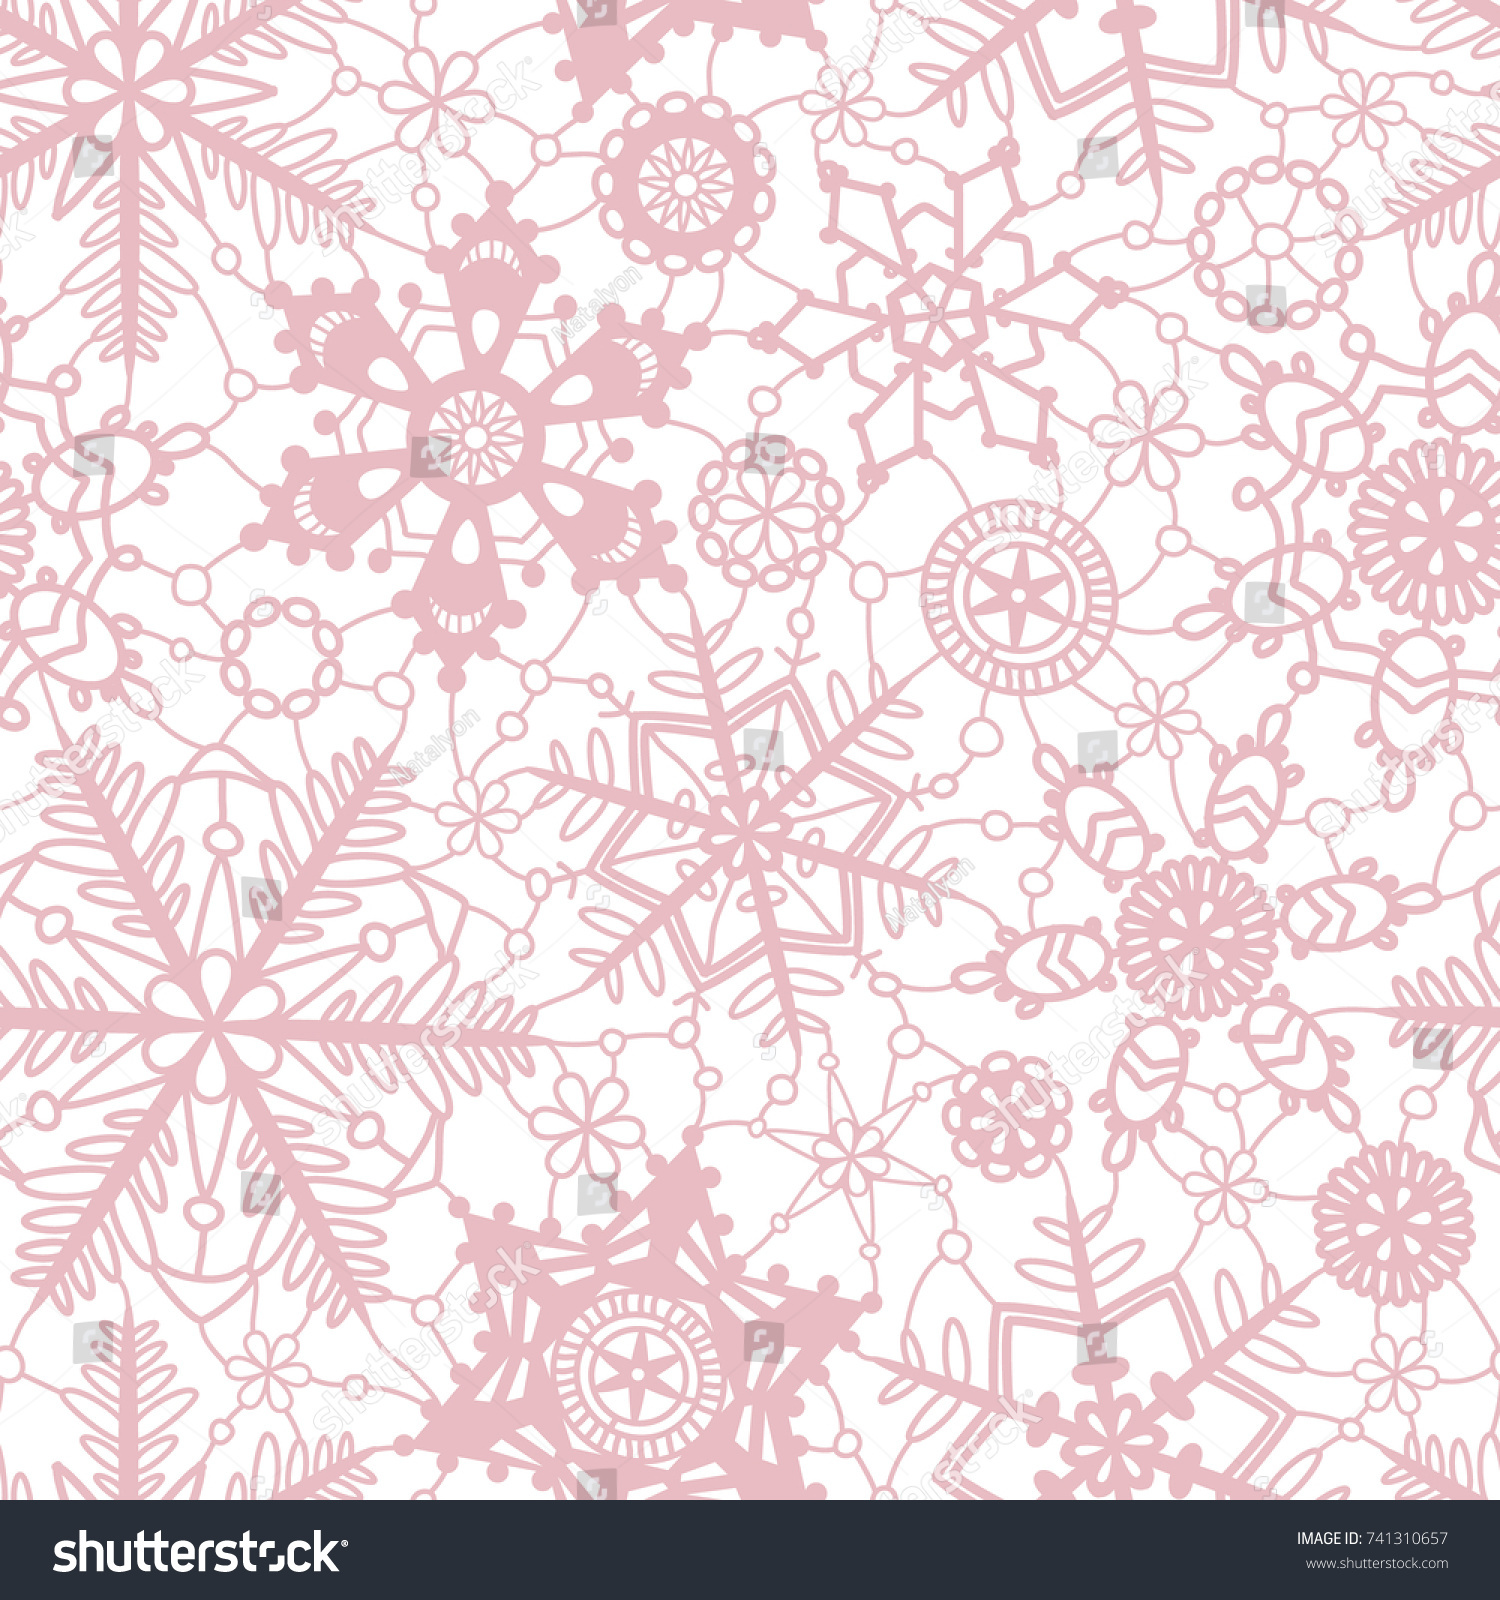 Pink crochet snowflakes on white seamless pattern, vector | EZ Canvas